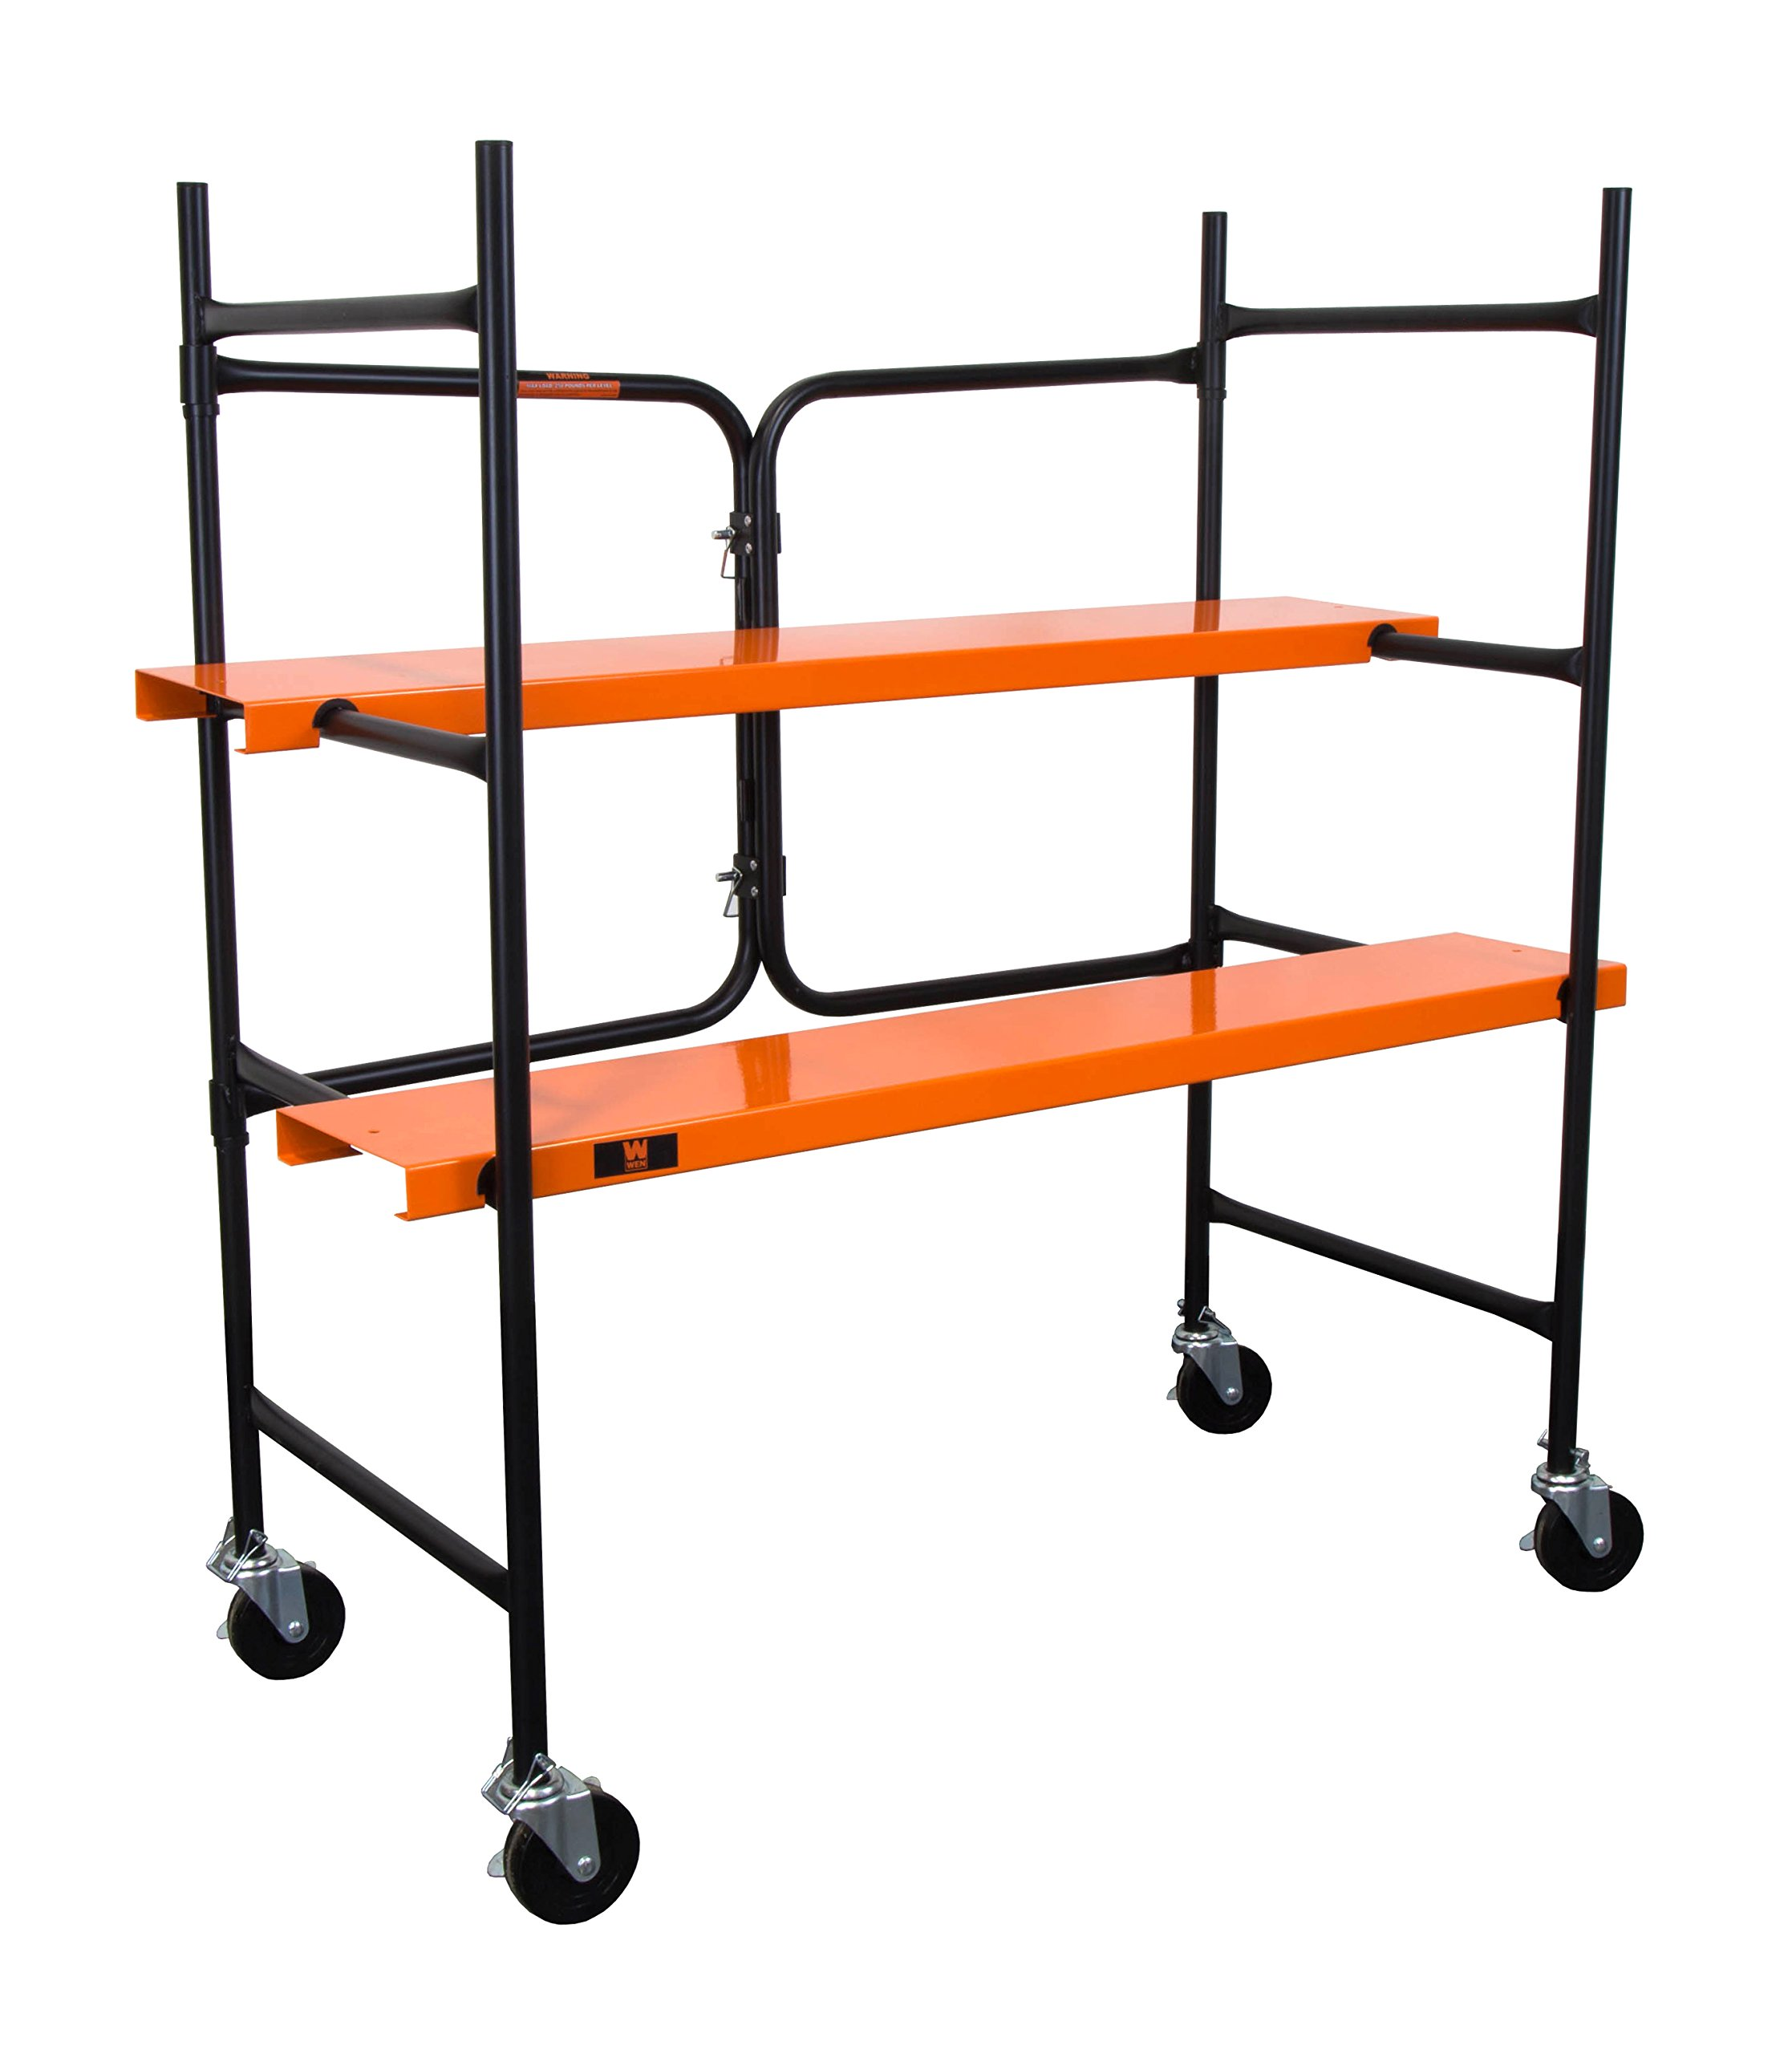 WEN 31105 500 lb Capacity Collapsible Rolling Scaffolding